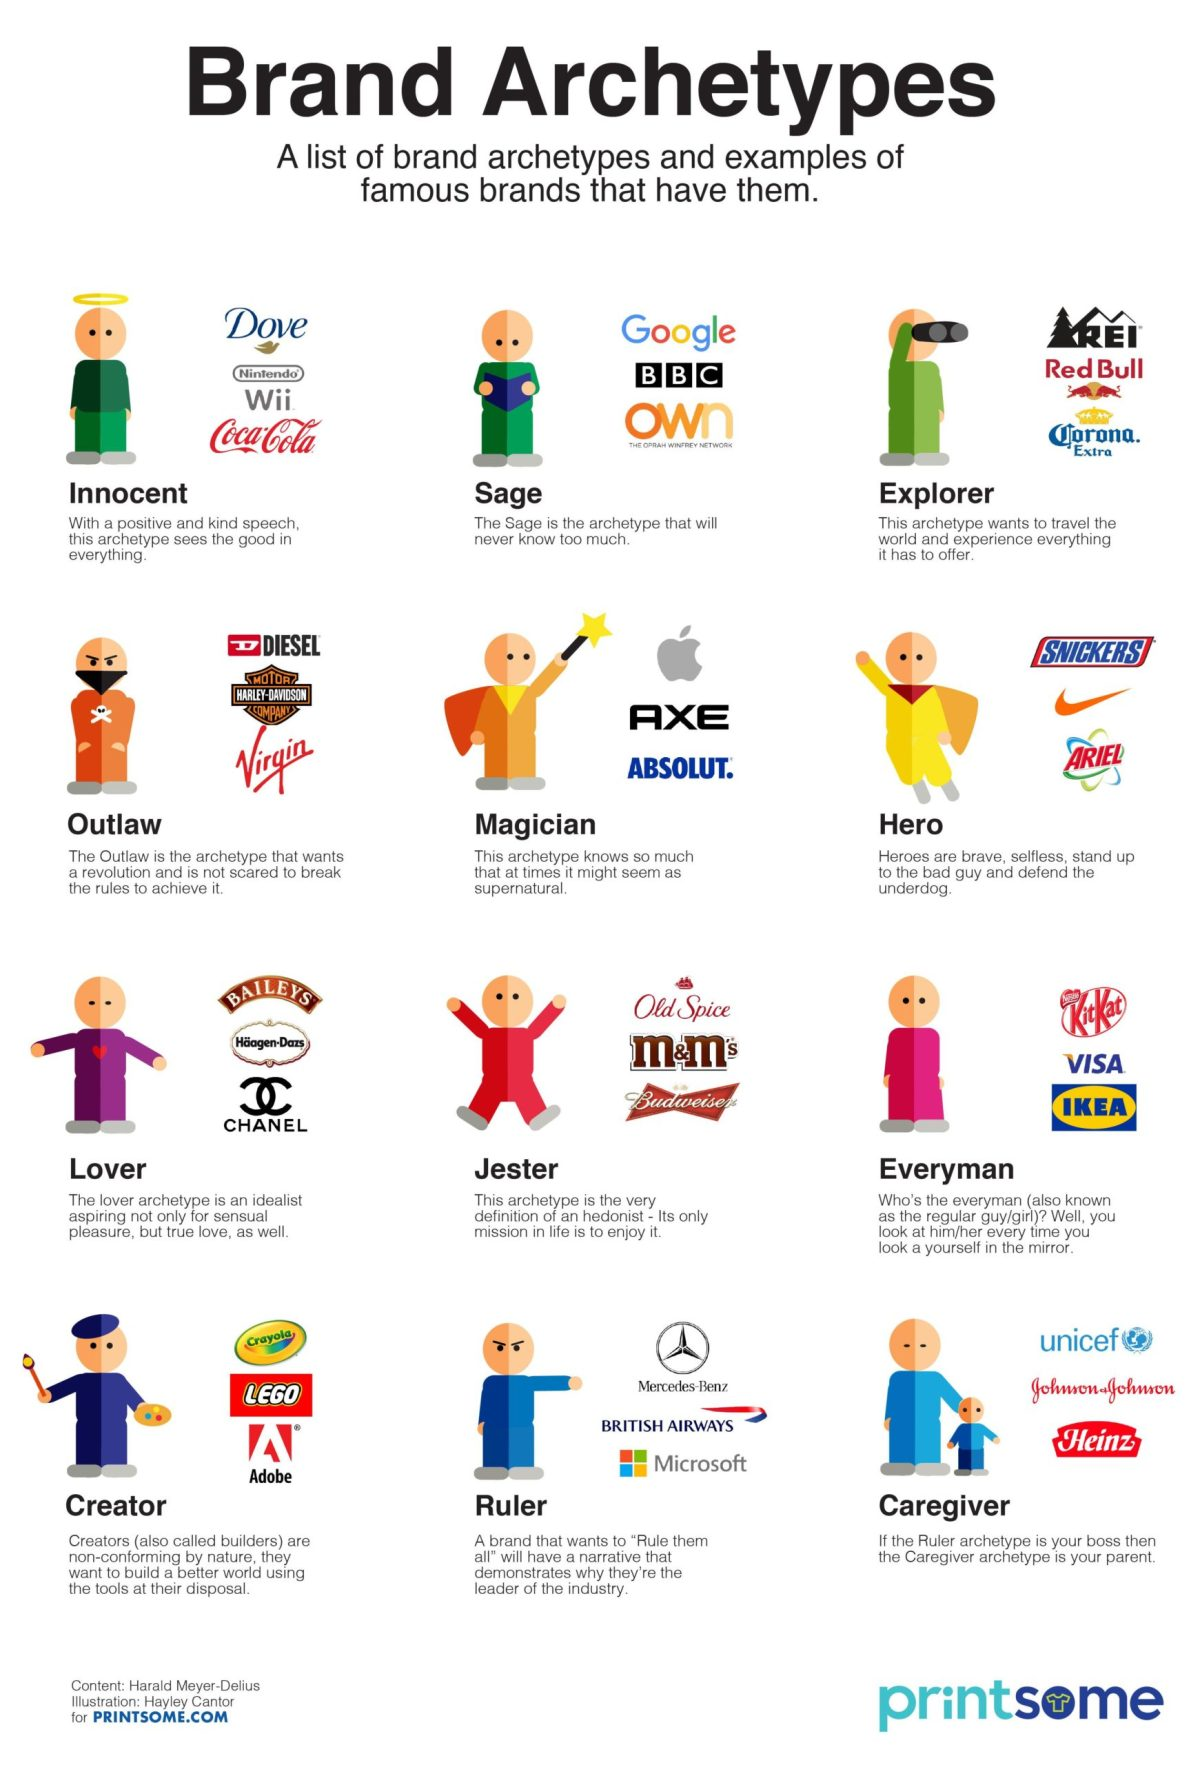 Brand Archtypes Infographic Image